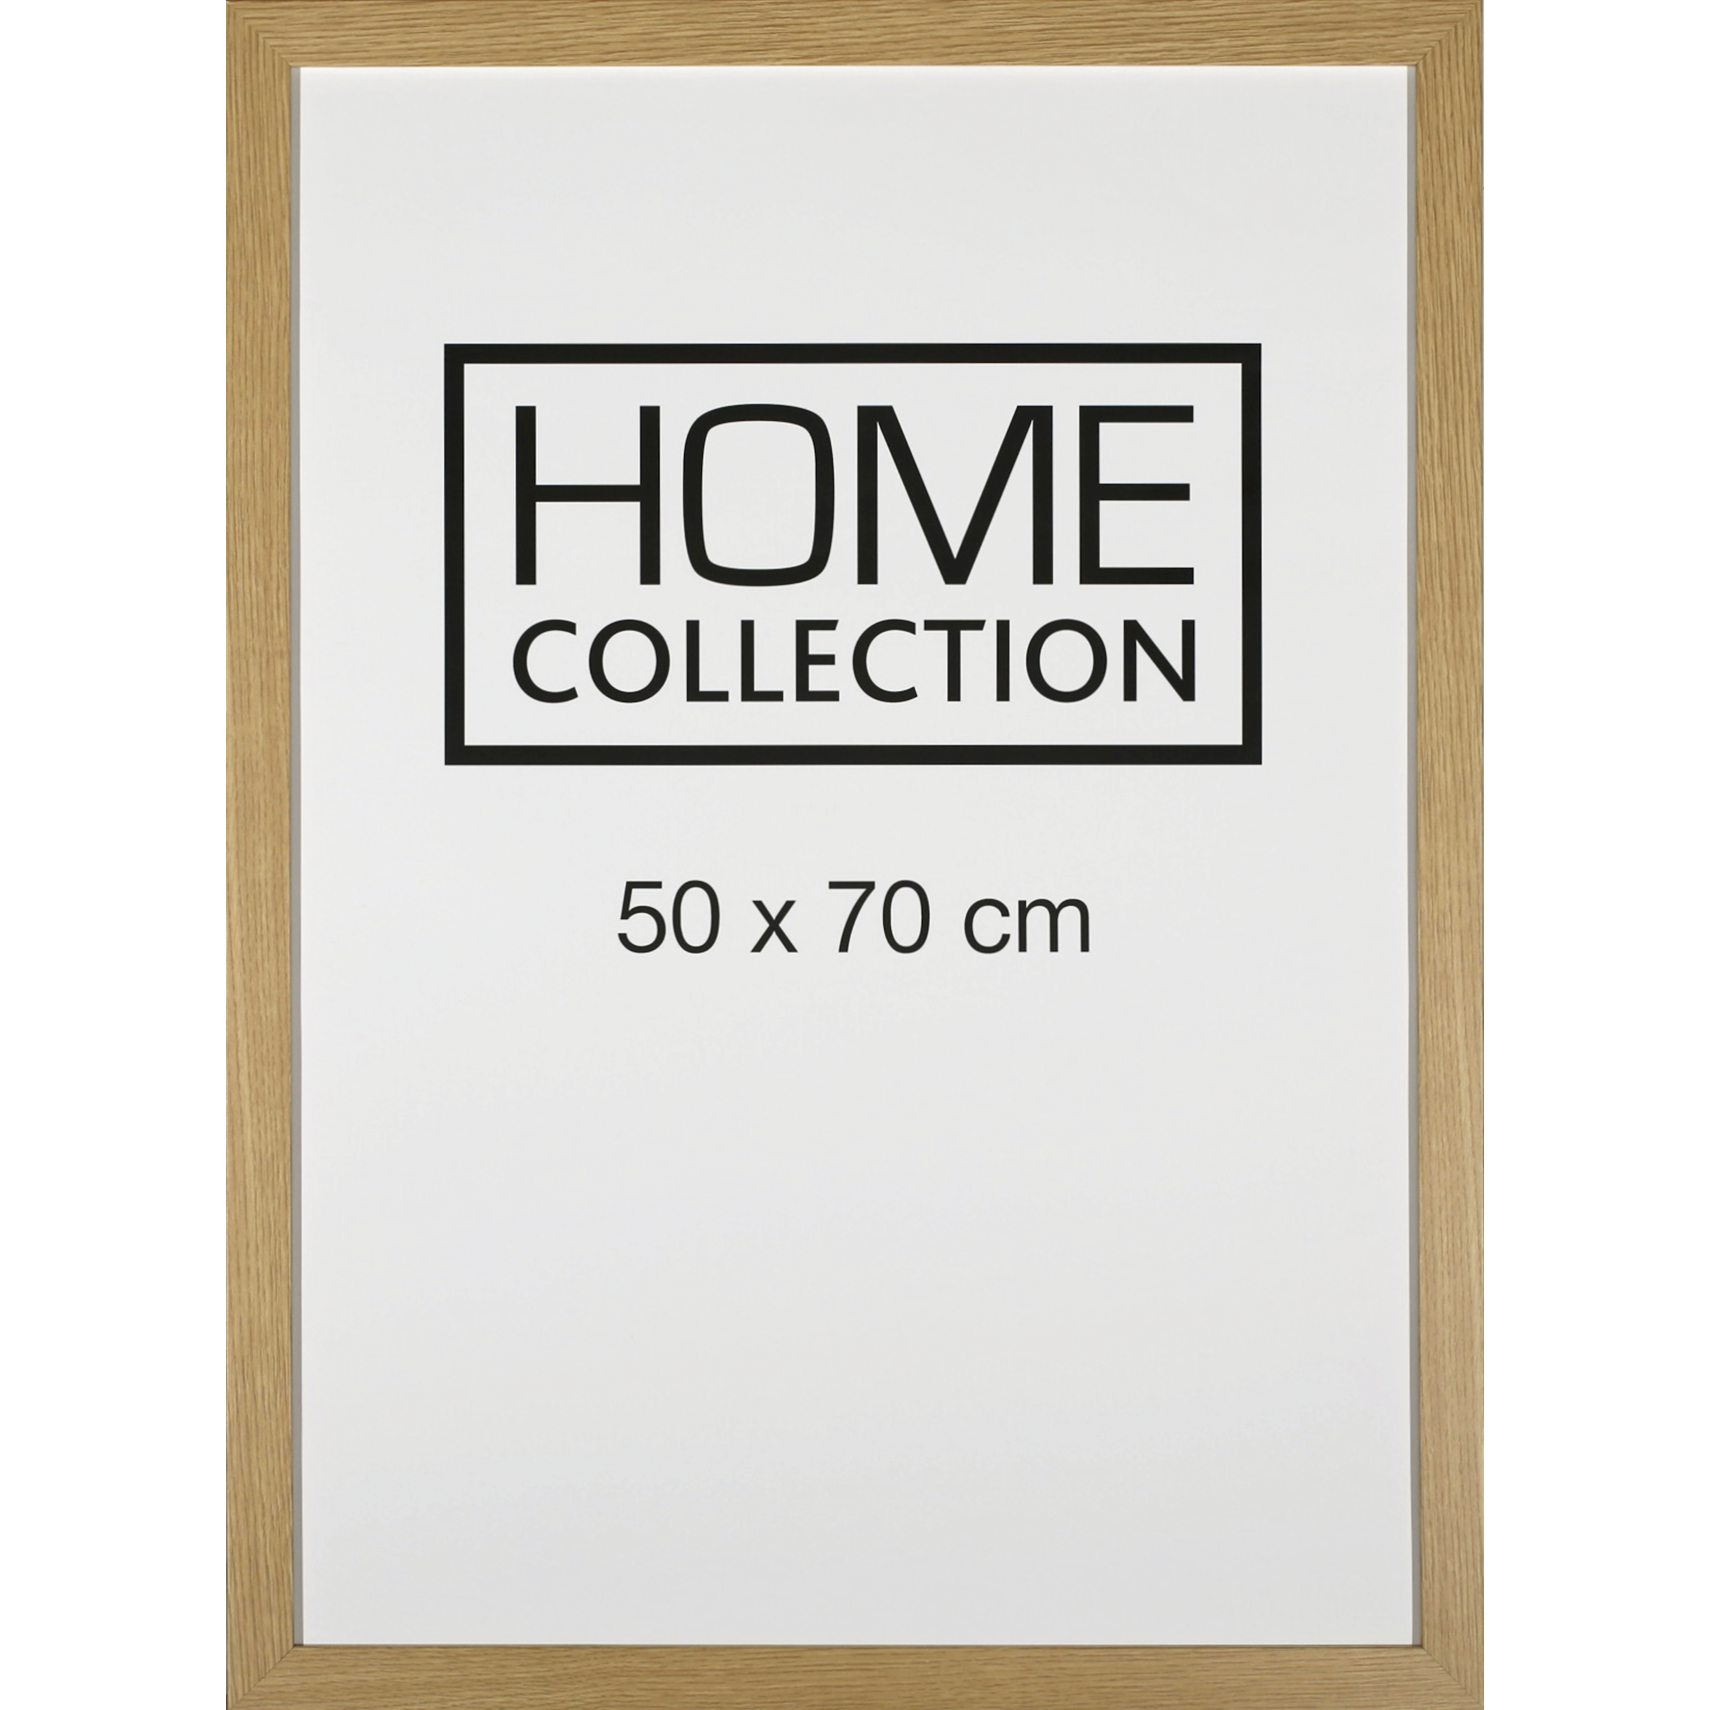 HOME COLLECTION Ram 50 x 70 x 2 cm - Ram i ekträ